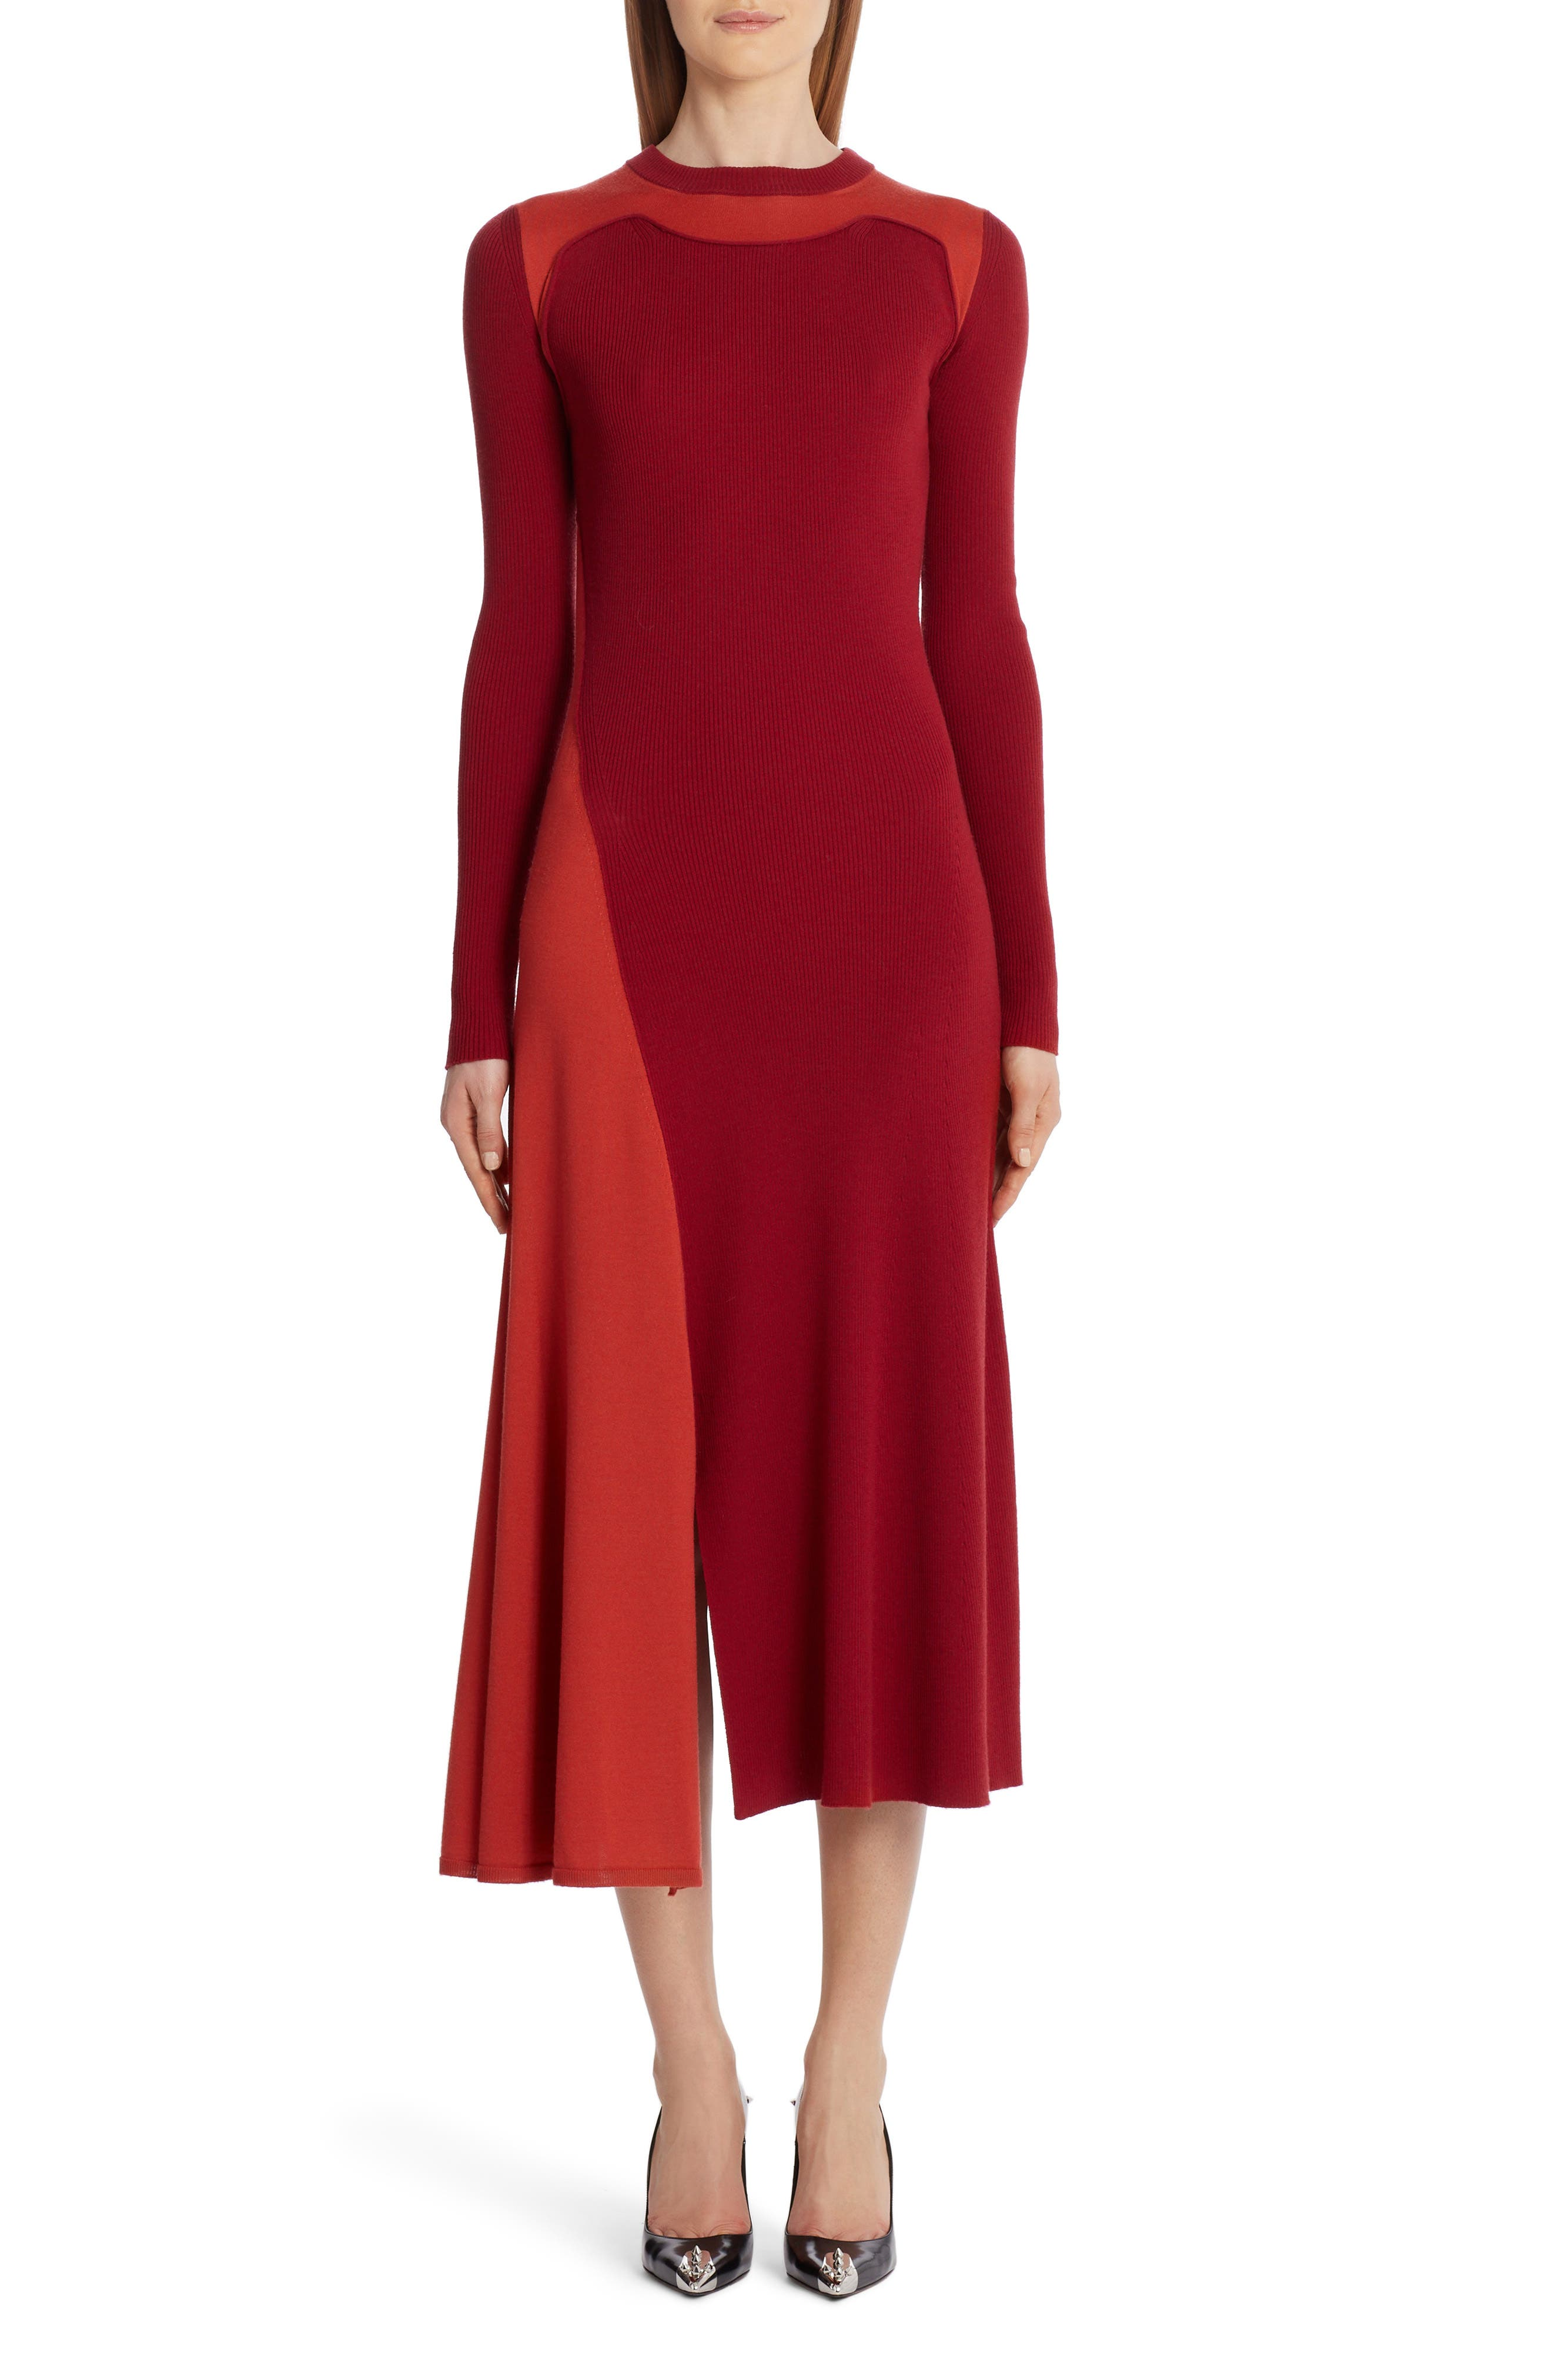 Drawing inspiration from patchwork quilts, this asymmetrical wool-and-cashmere dress mixes colors and various ribbed textures for a strong, modern look. Style Name: Alexander Mcqueen Colorblock Long Sleeve Wool & Cashmere Sweater Dress. Style Number: 6060649. Available in stores.